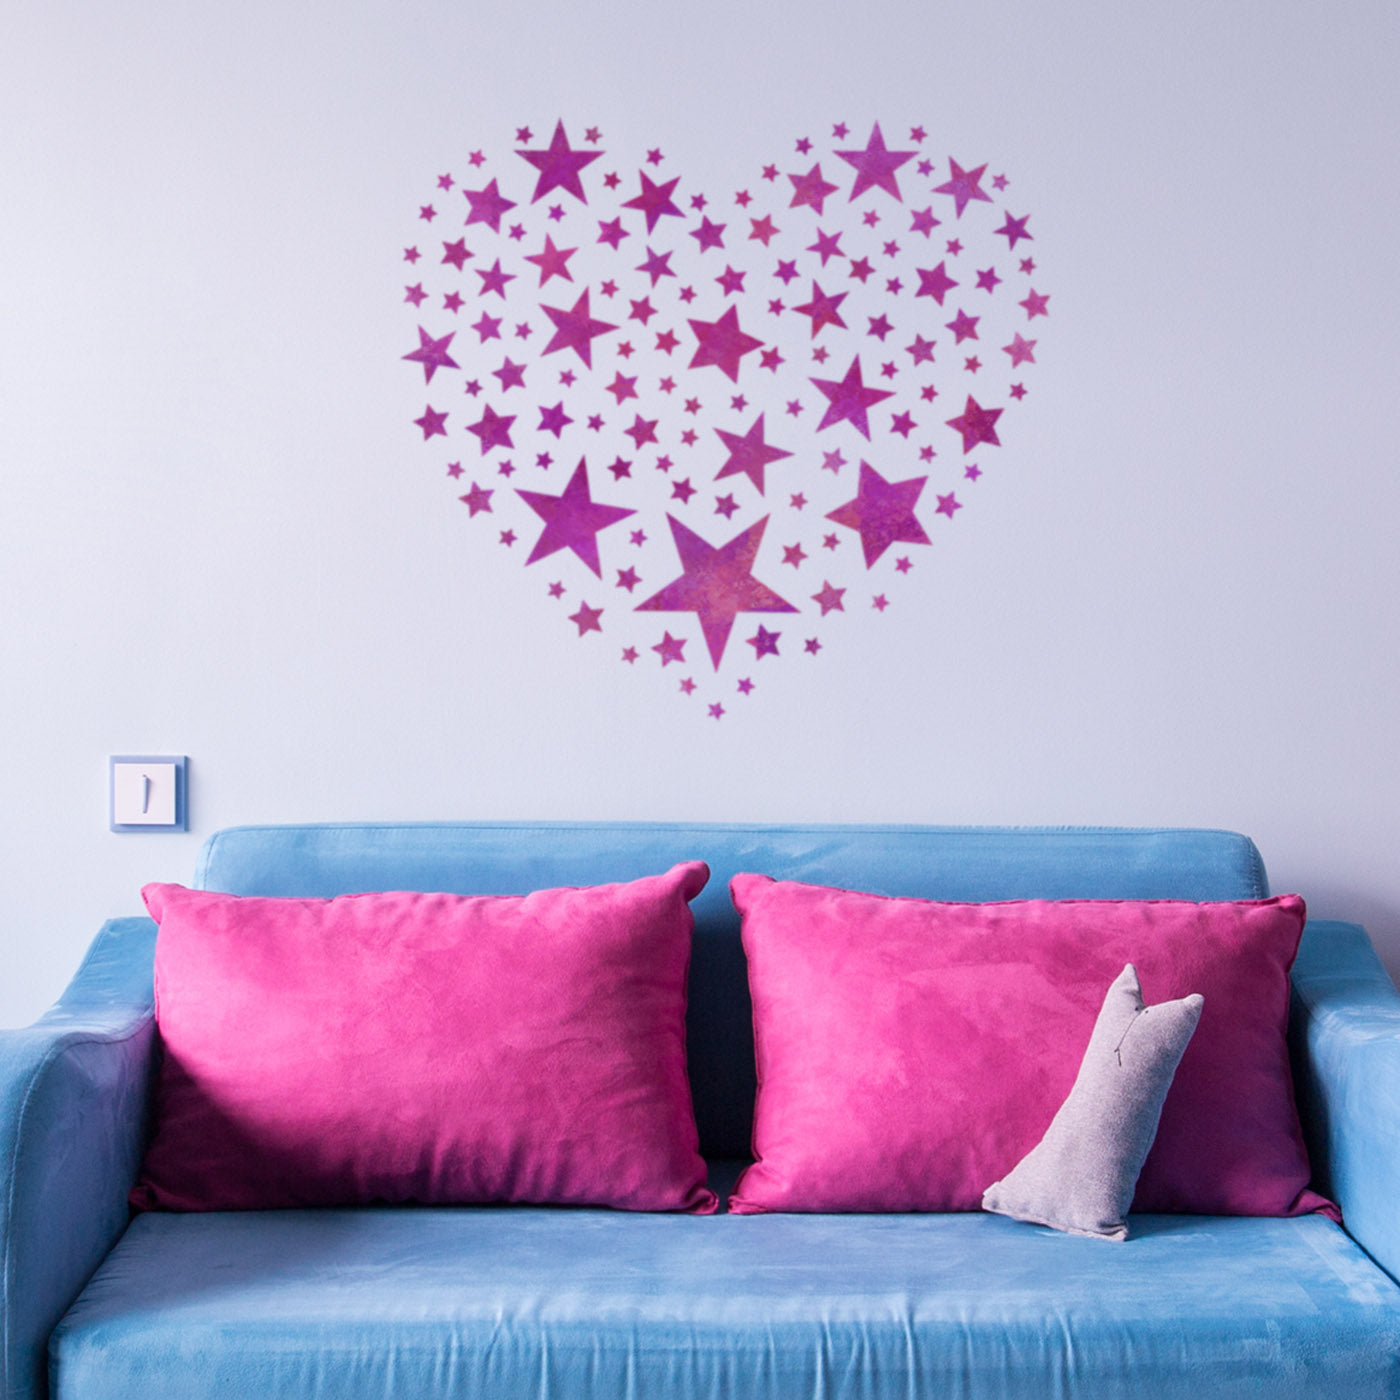 CraftStar Star Pattern Heart Stencil in Playroom